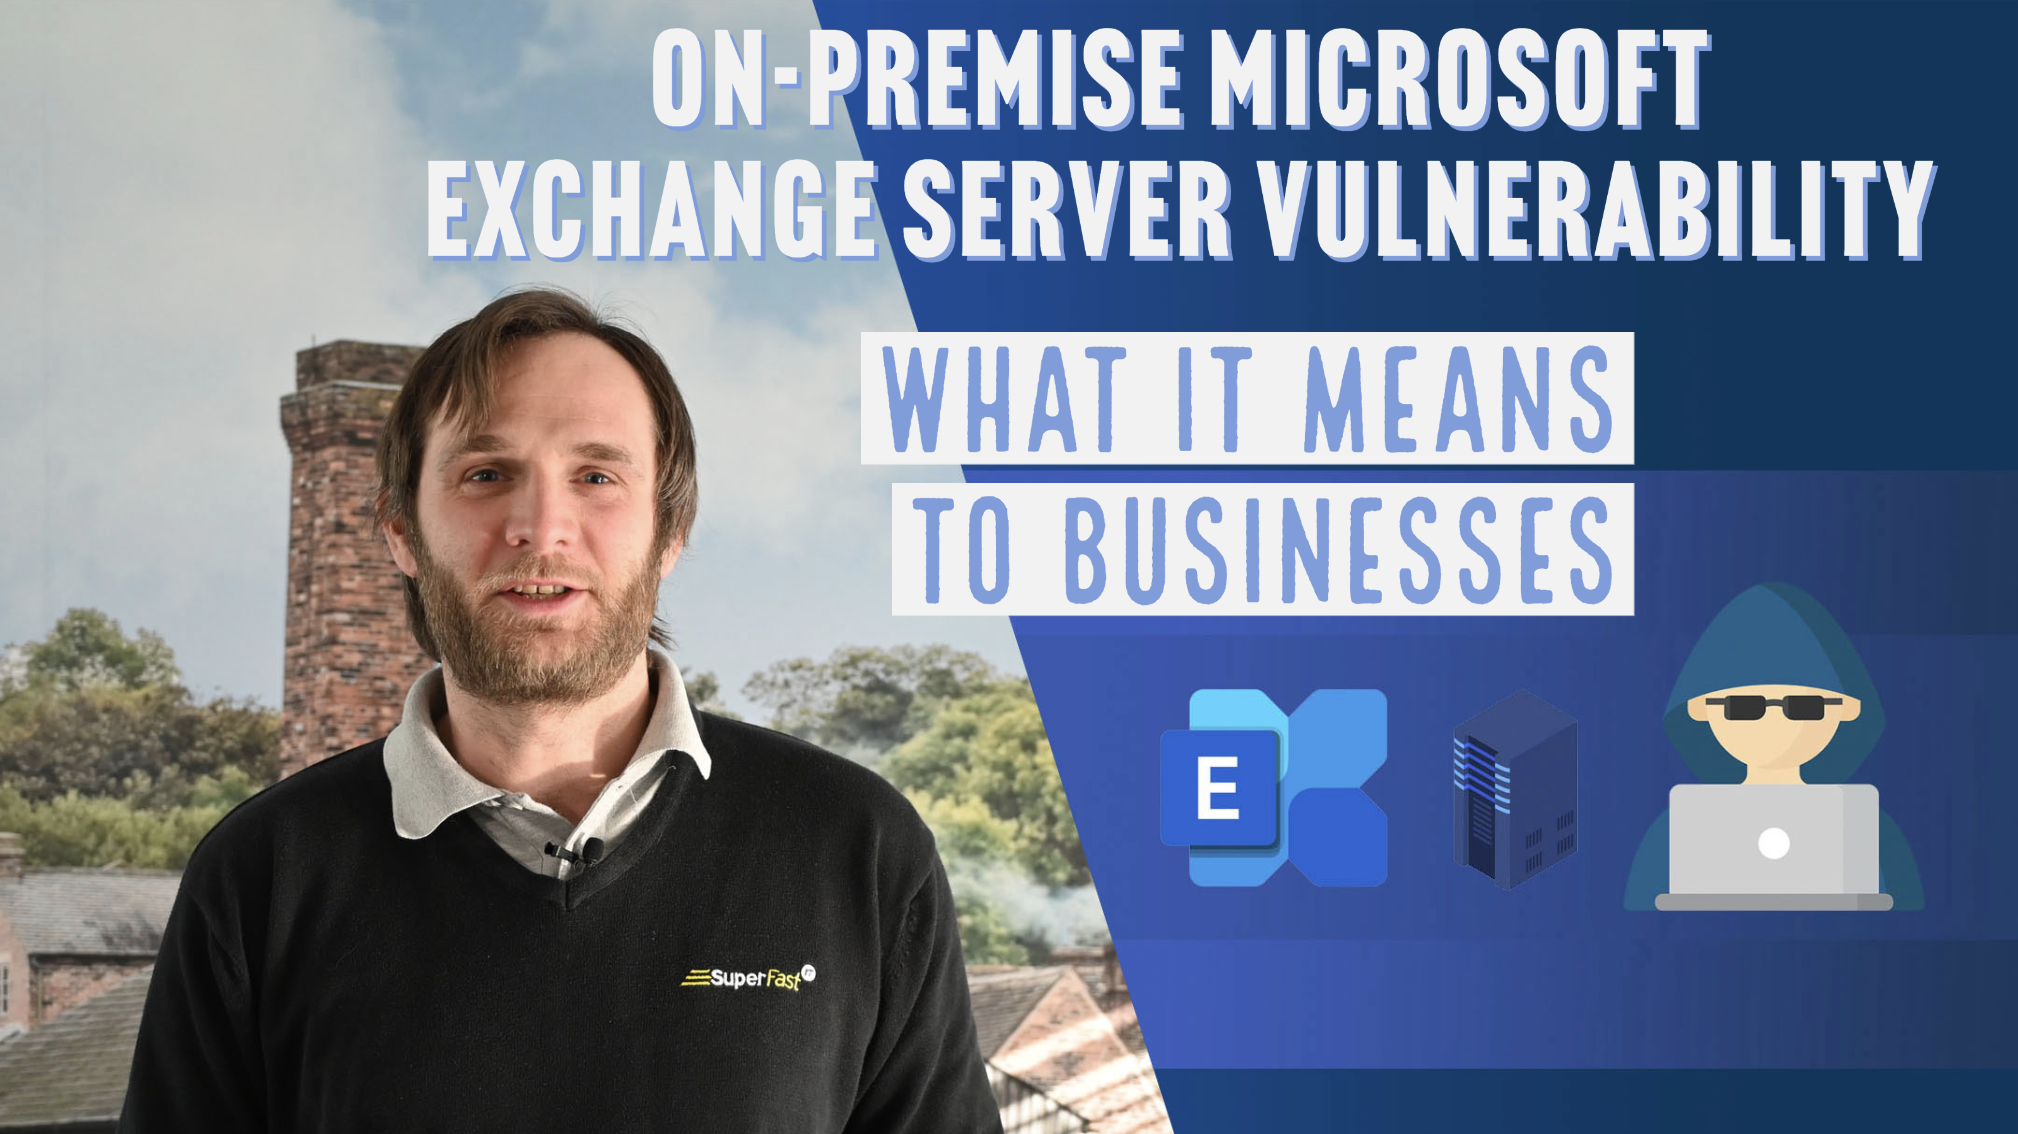 What the on-premise Microsoft Exchange Server vulnerability means to businesses